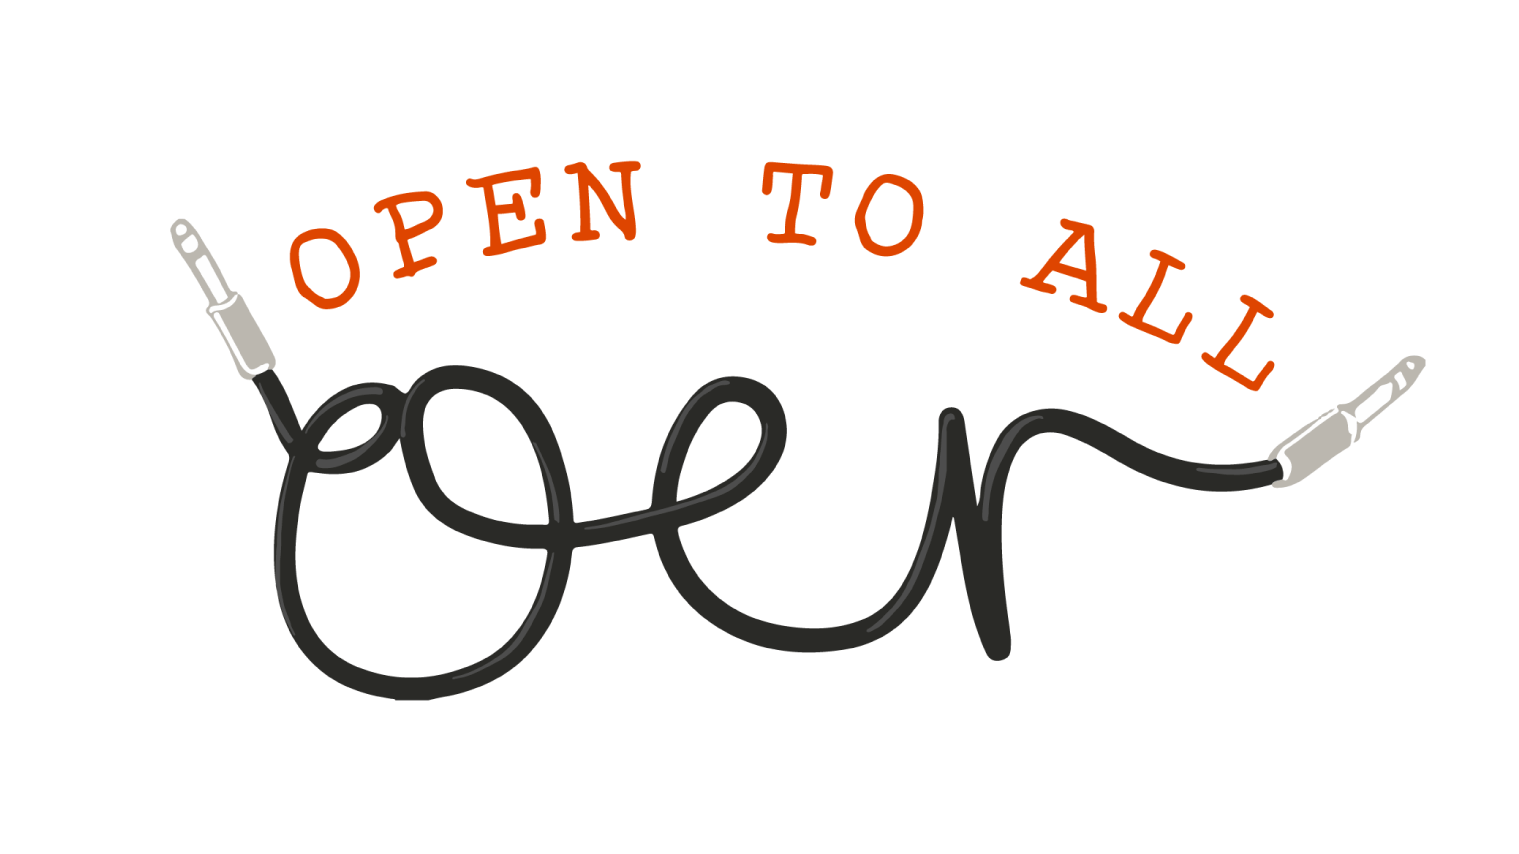 OER - Open to all